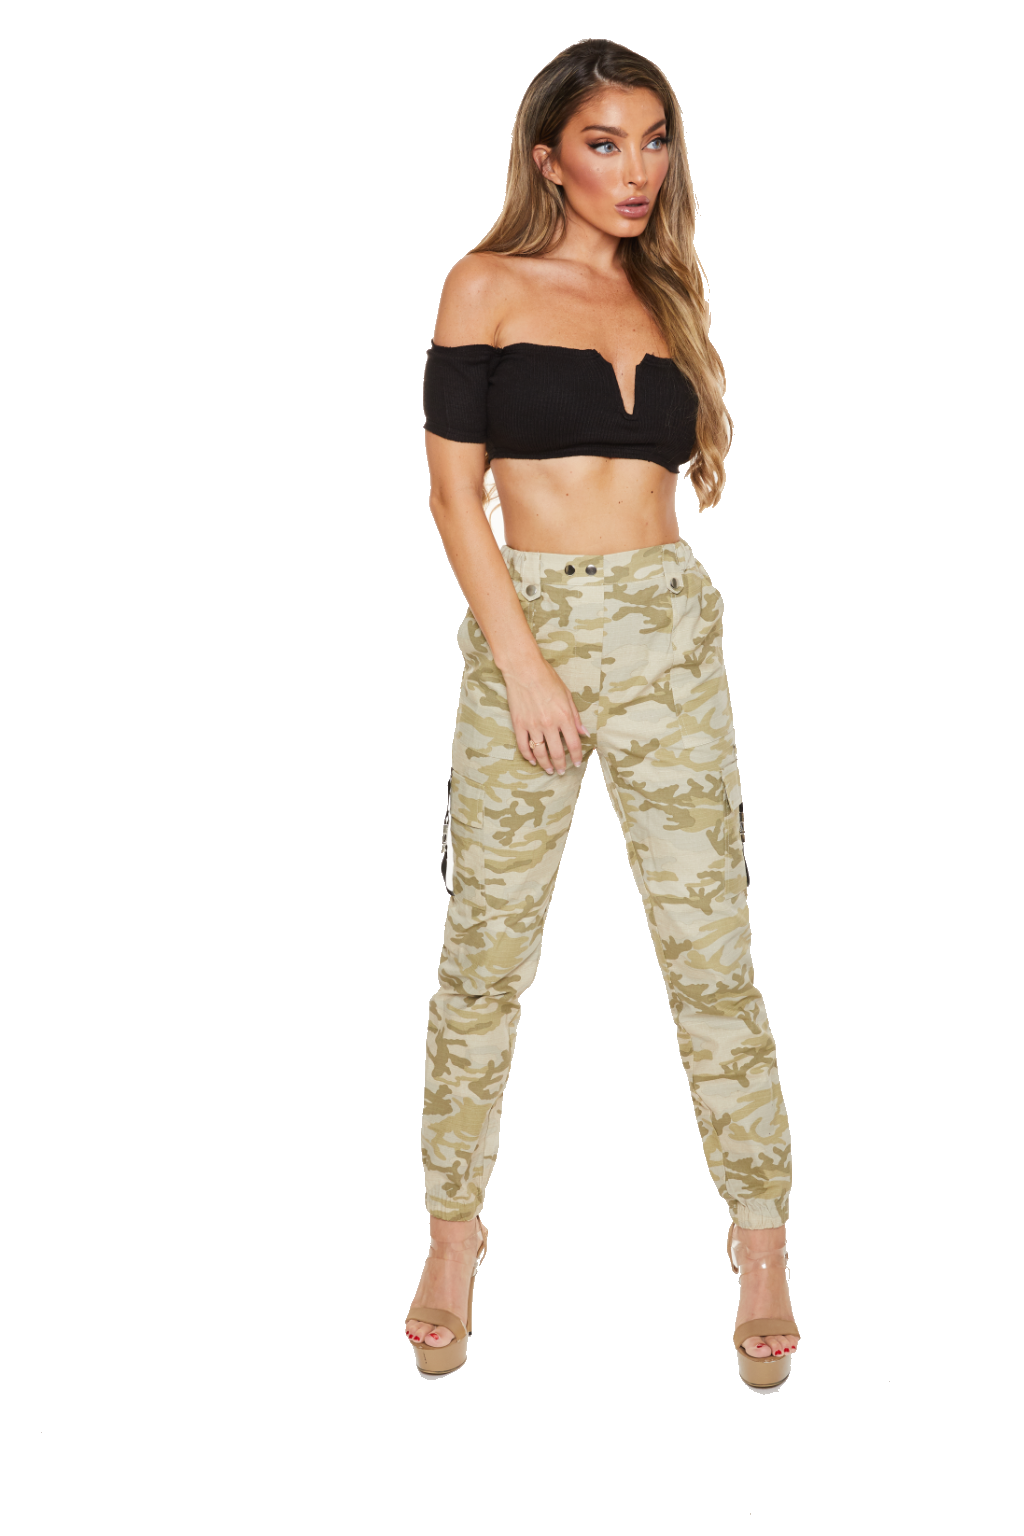 DIGITAL COMBAT - Army Pants - www.prettyboutique.com